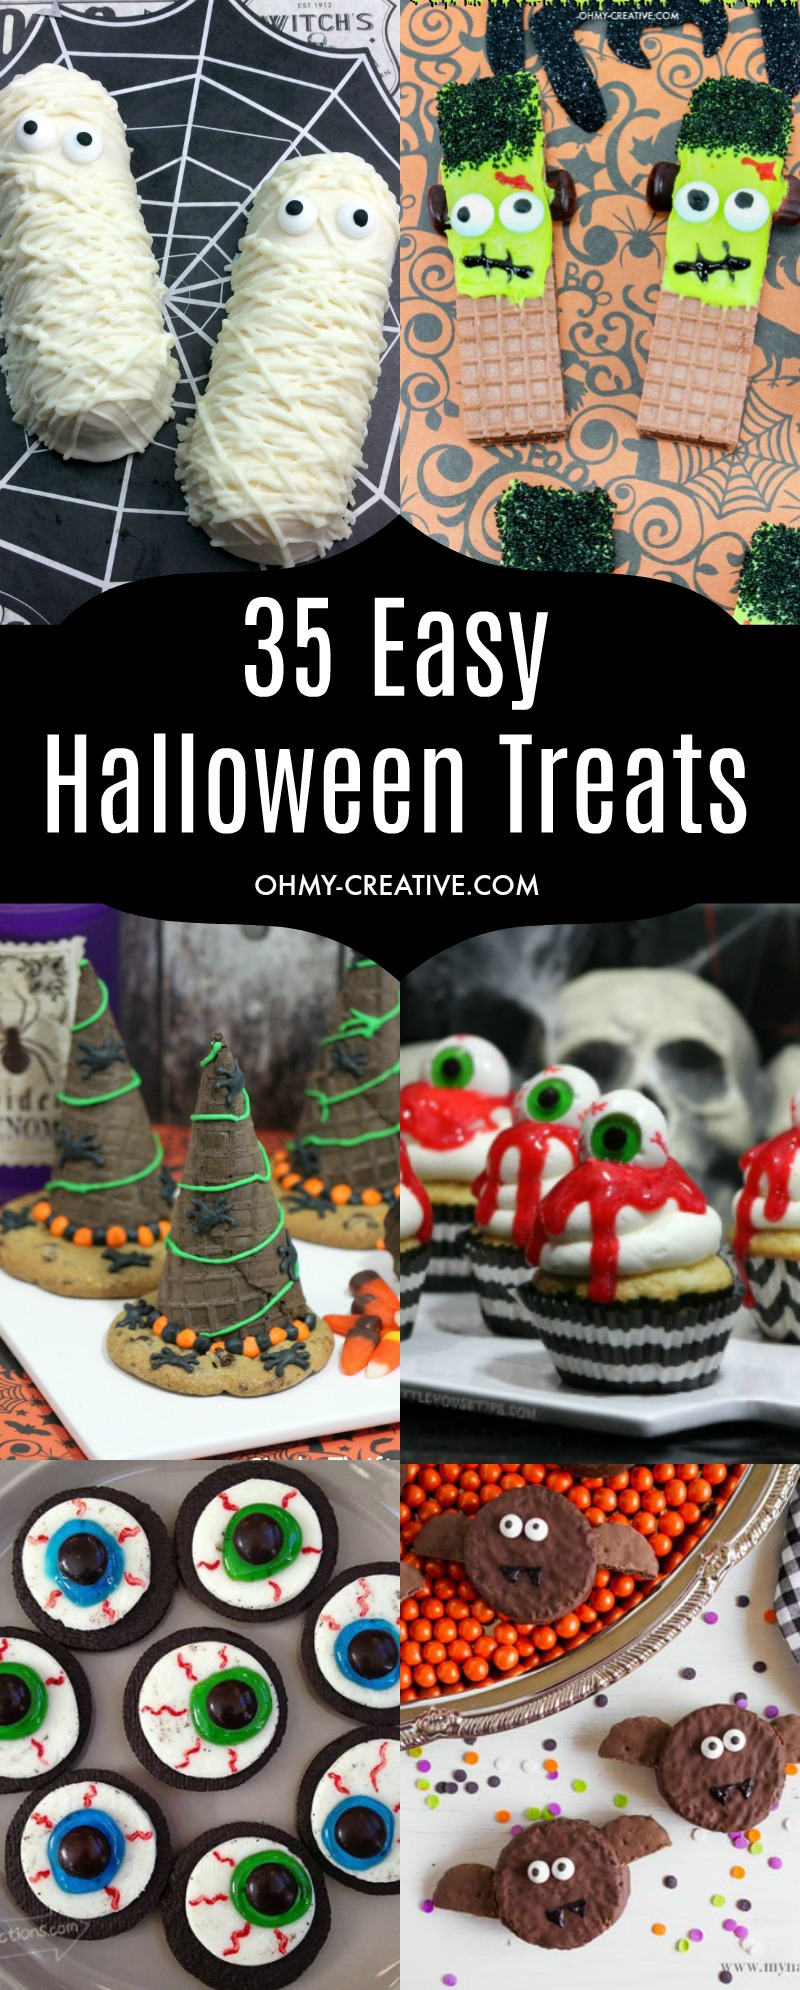 easy halloween treats to make oh my creative. Black Bedroom Furniture Sets. Home Design Ideas